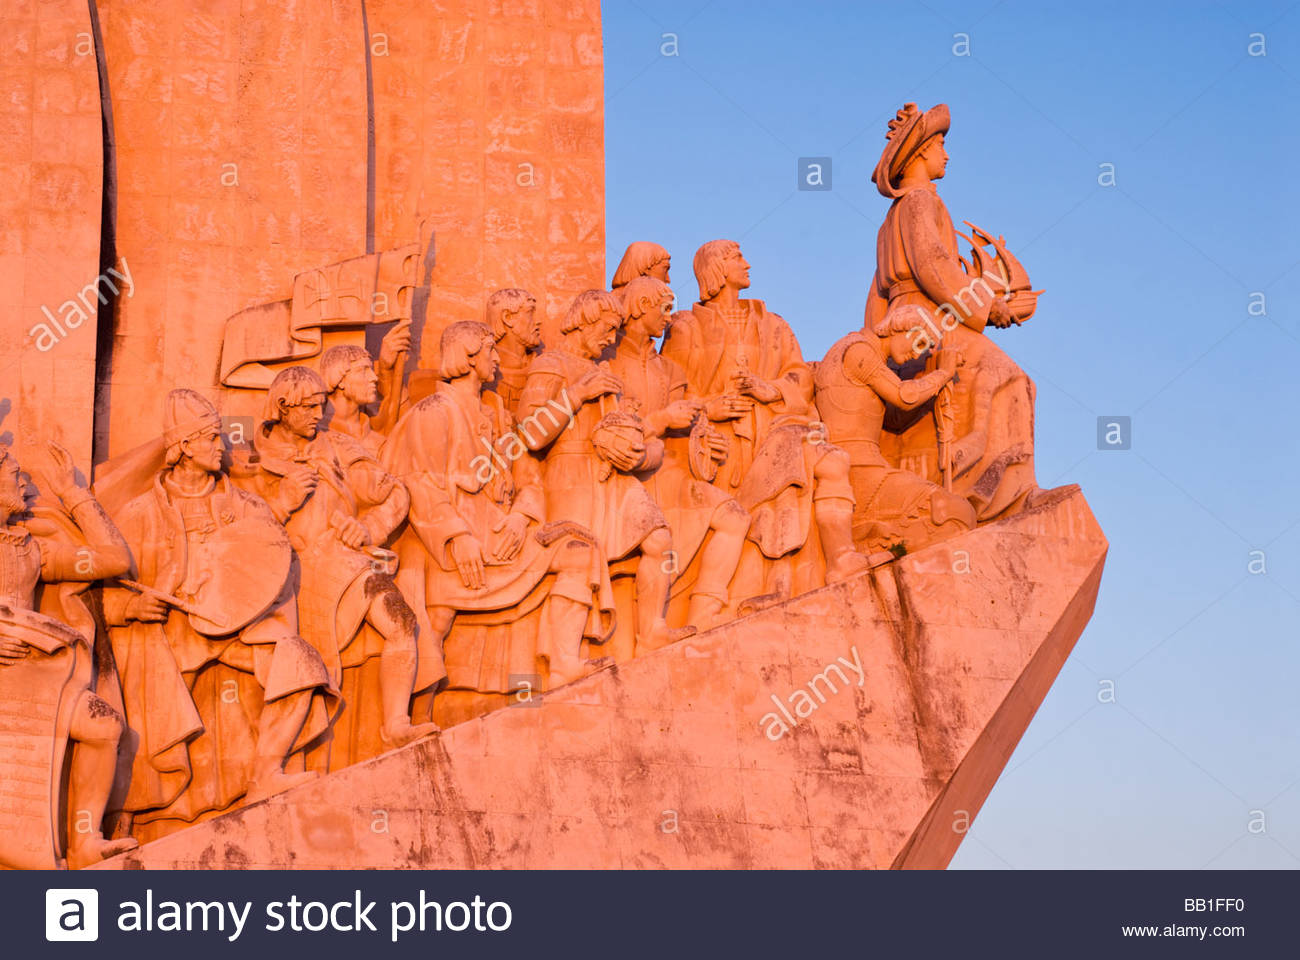 Monument to the Discoveries, Belém, Lisbon, Portugal. Stock Photo